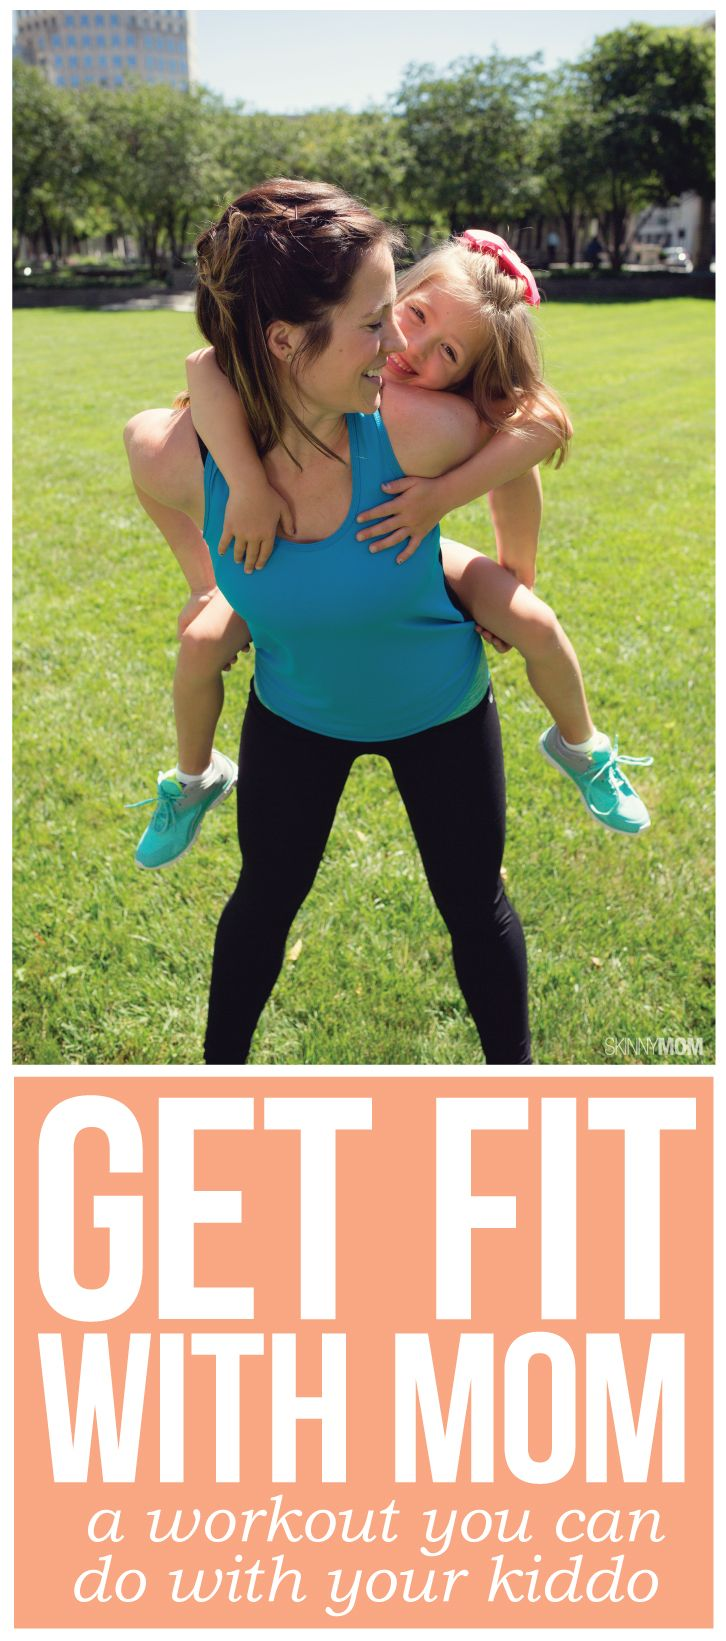 This is a full family workout you've gotta try!